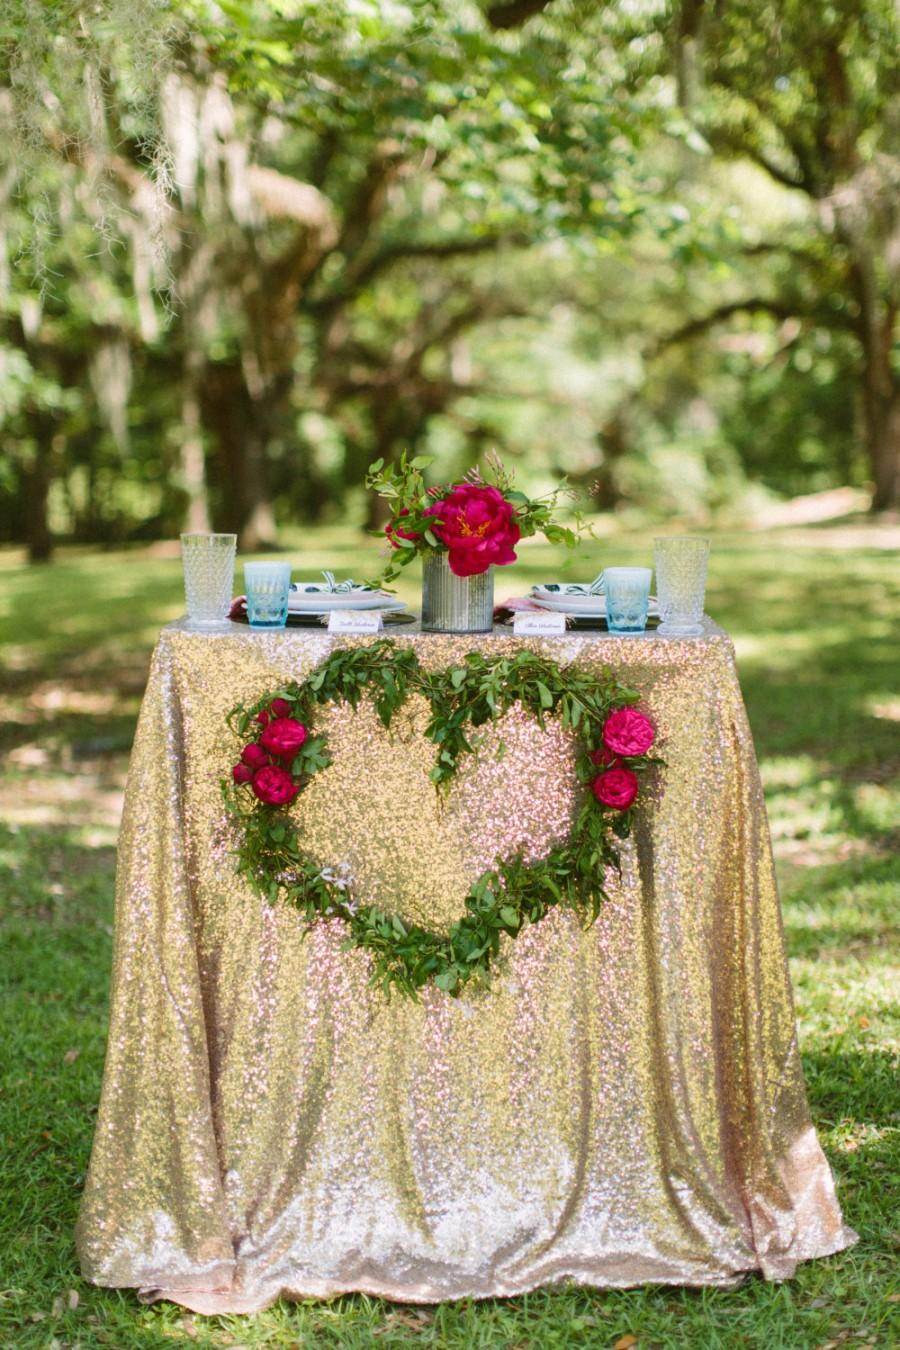 Warm Gold Sequin Tablecloth For Retro Wedding And Events! Custom Sparkle  Table Cloths, Tablecloths, Runners U0026 Overlays